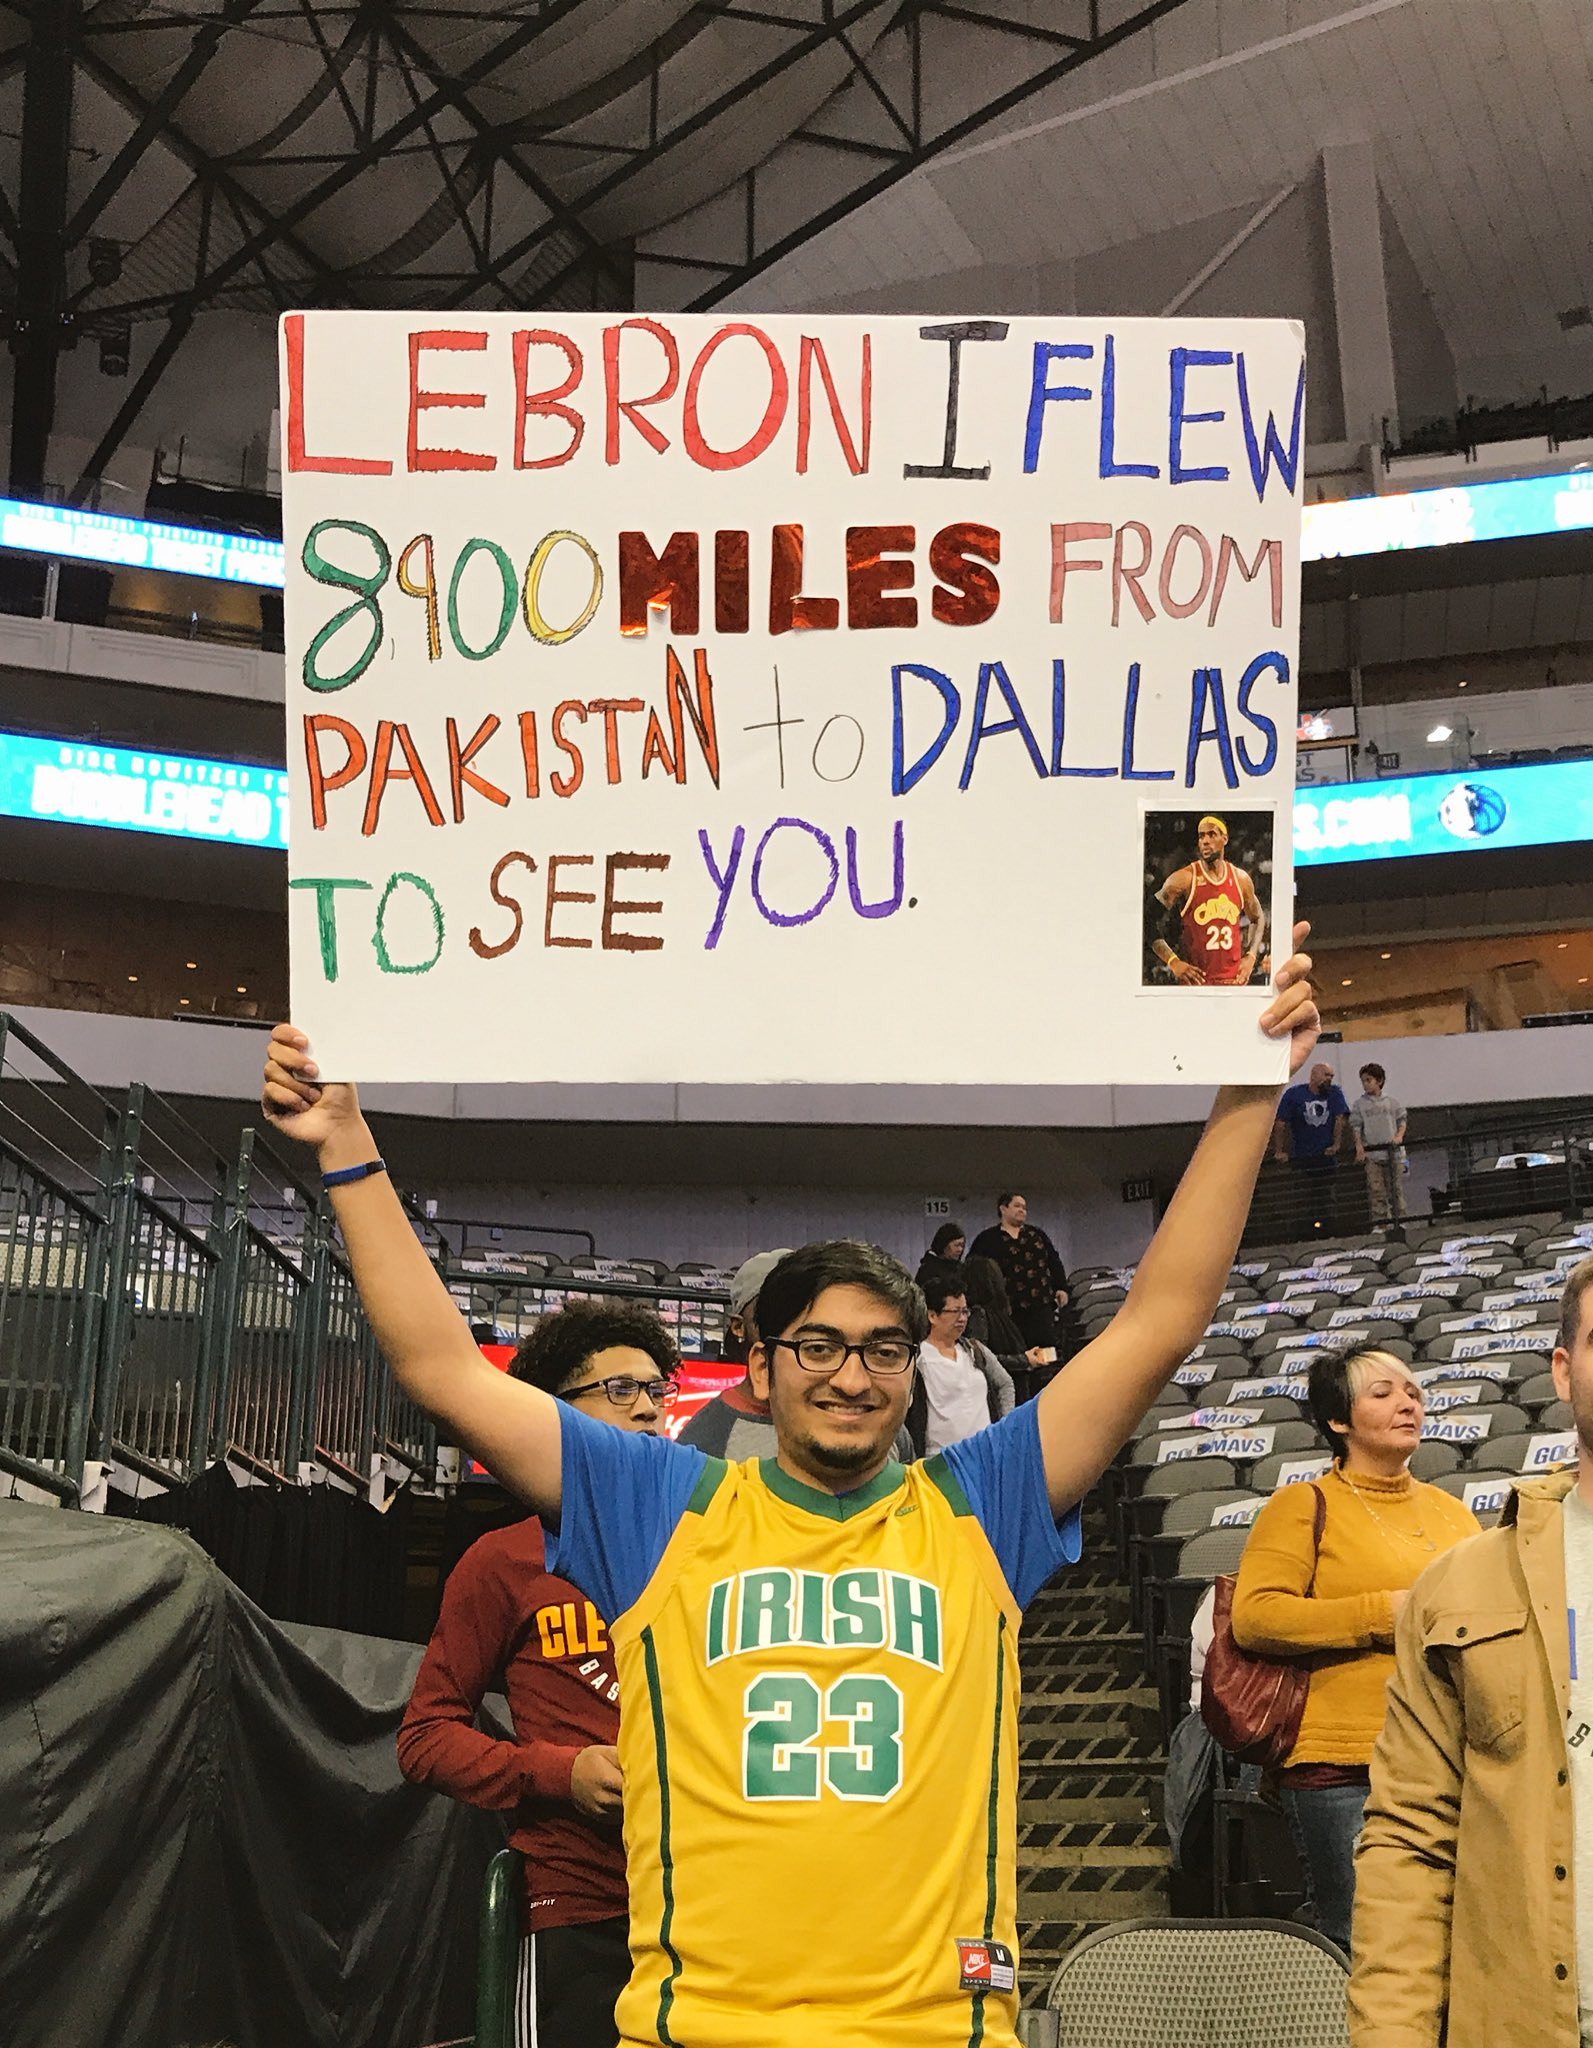 8900 miles!  @CavsWGNation is strong across the globe. ��  #CavsMavs || #AllForOne https://t.co/LQvuyqBoV6